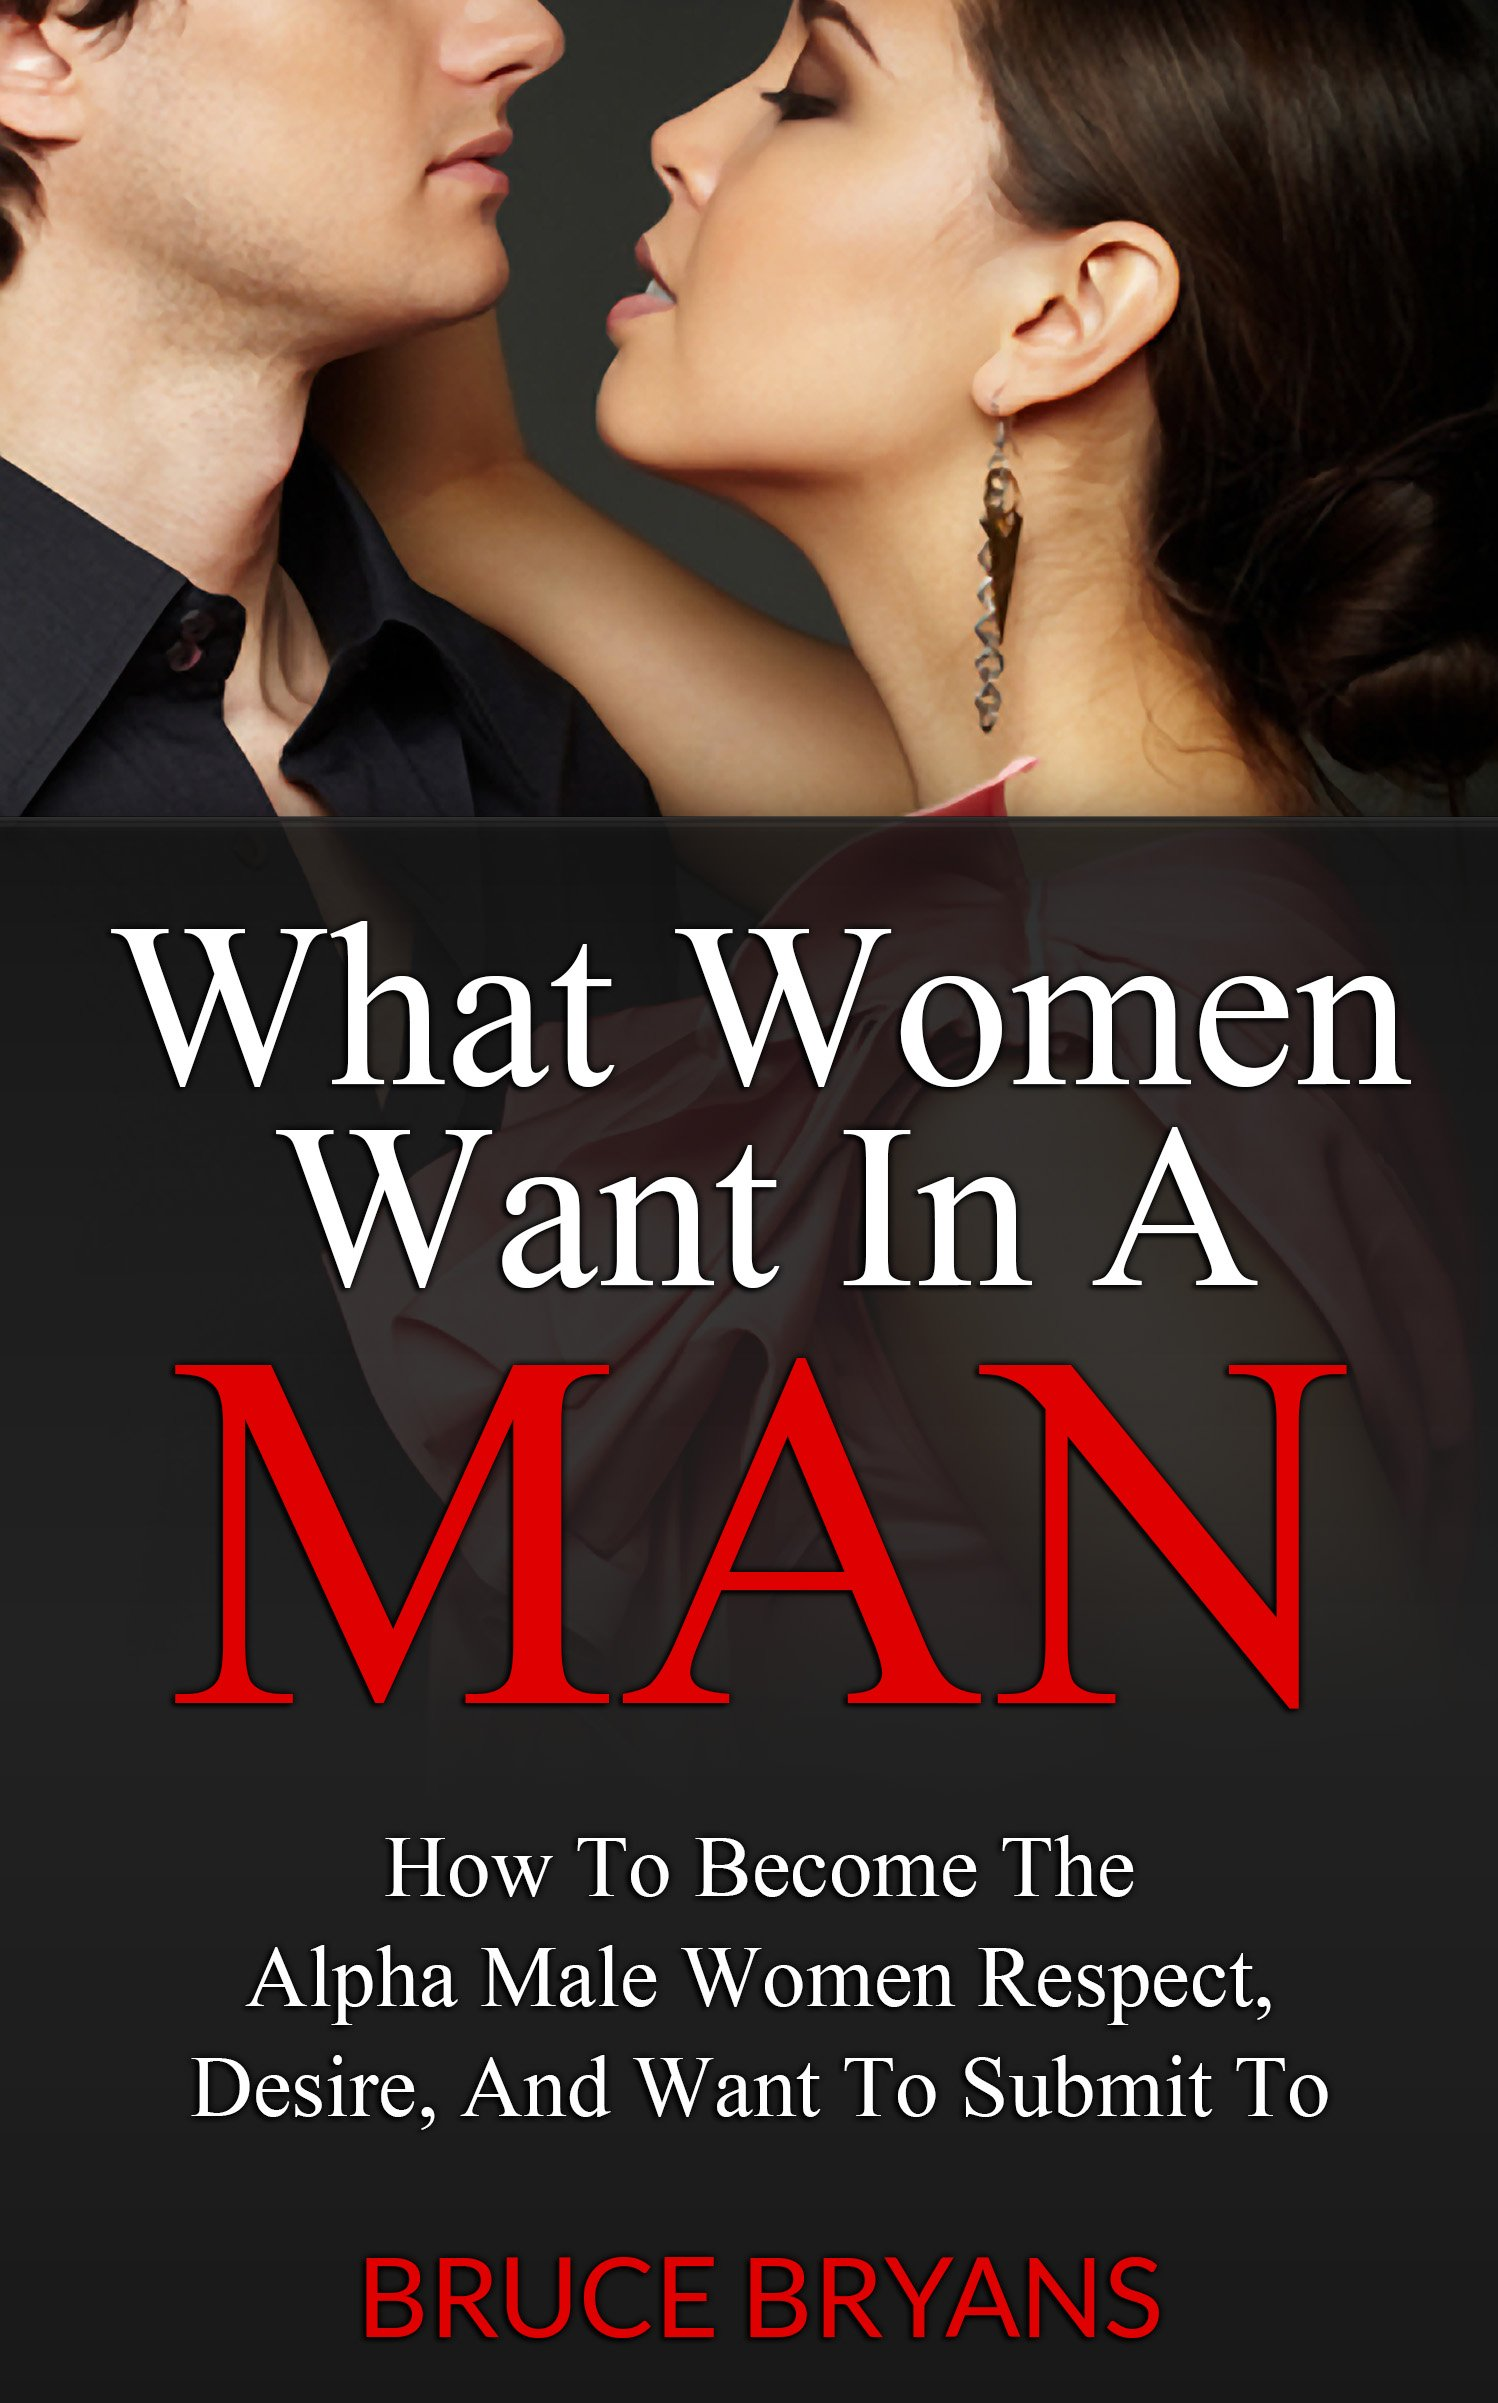 What Women Want In A Man: How to Become the Alpha Male Women Respect Desire and Want to Submit To (English Edition)